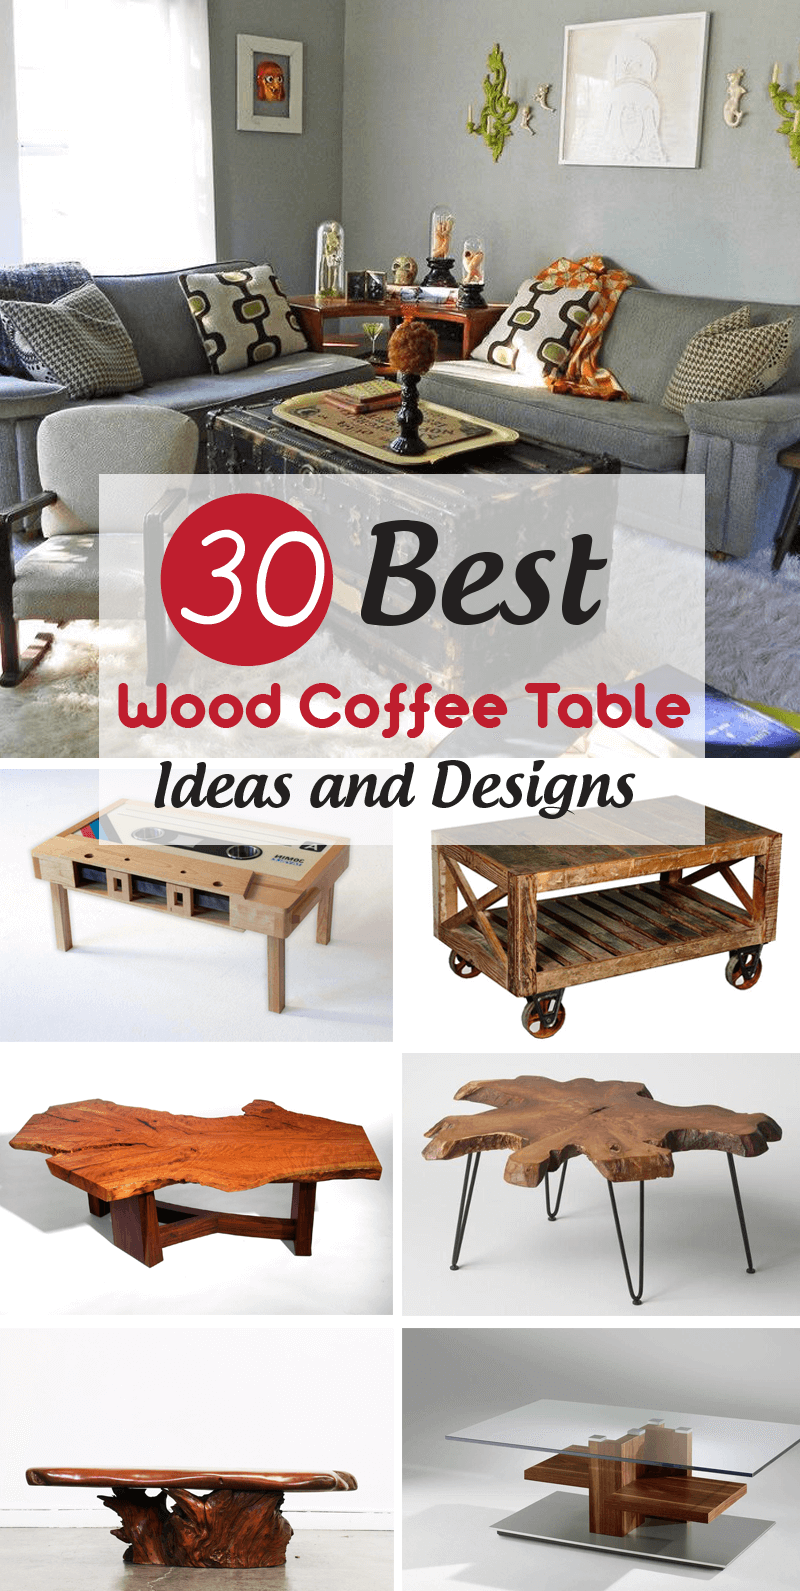 30 Distressed Rustic Living Room Design Ideas To Inspire: 30 Best Wood Coffee Table Ideas And Designs For Your Dream